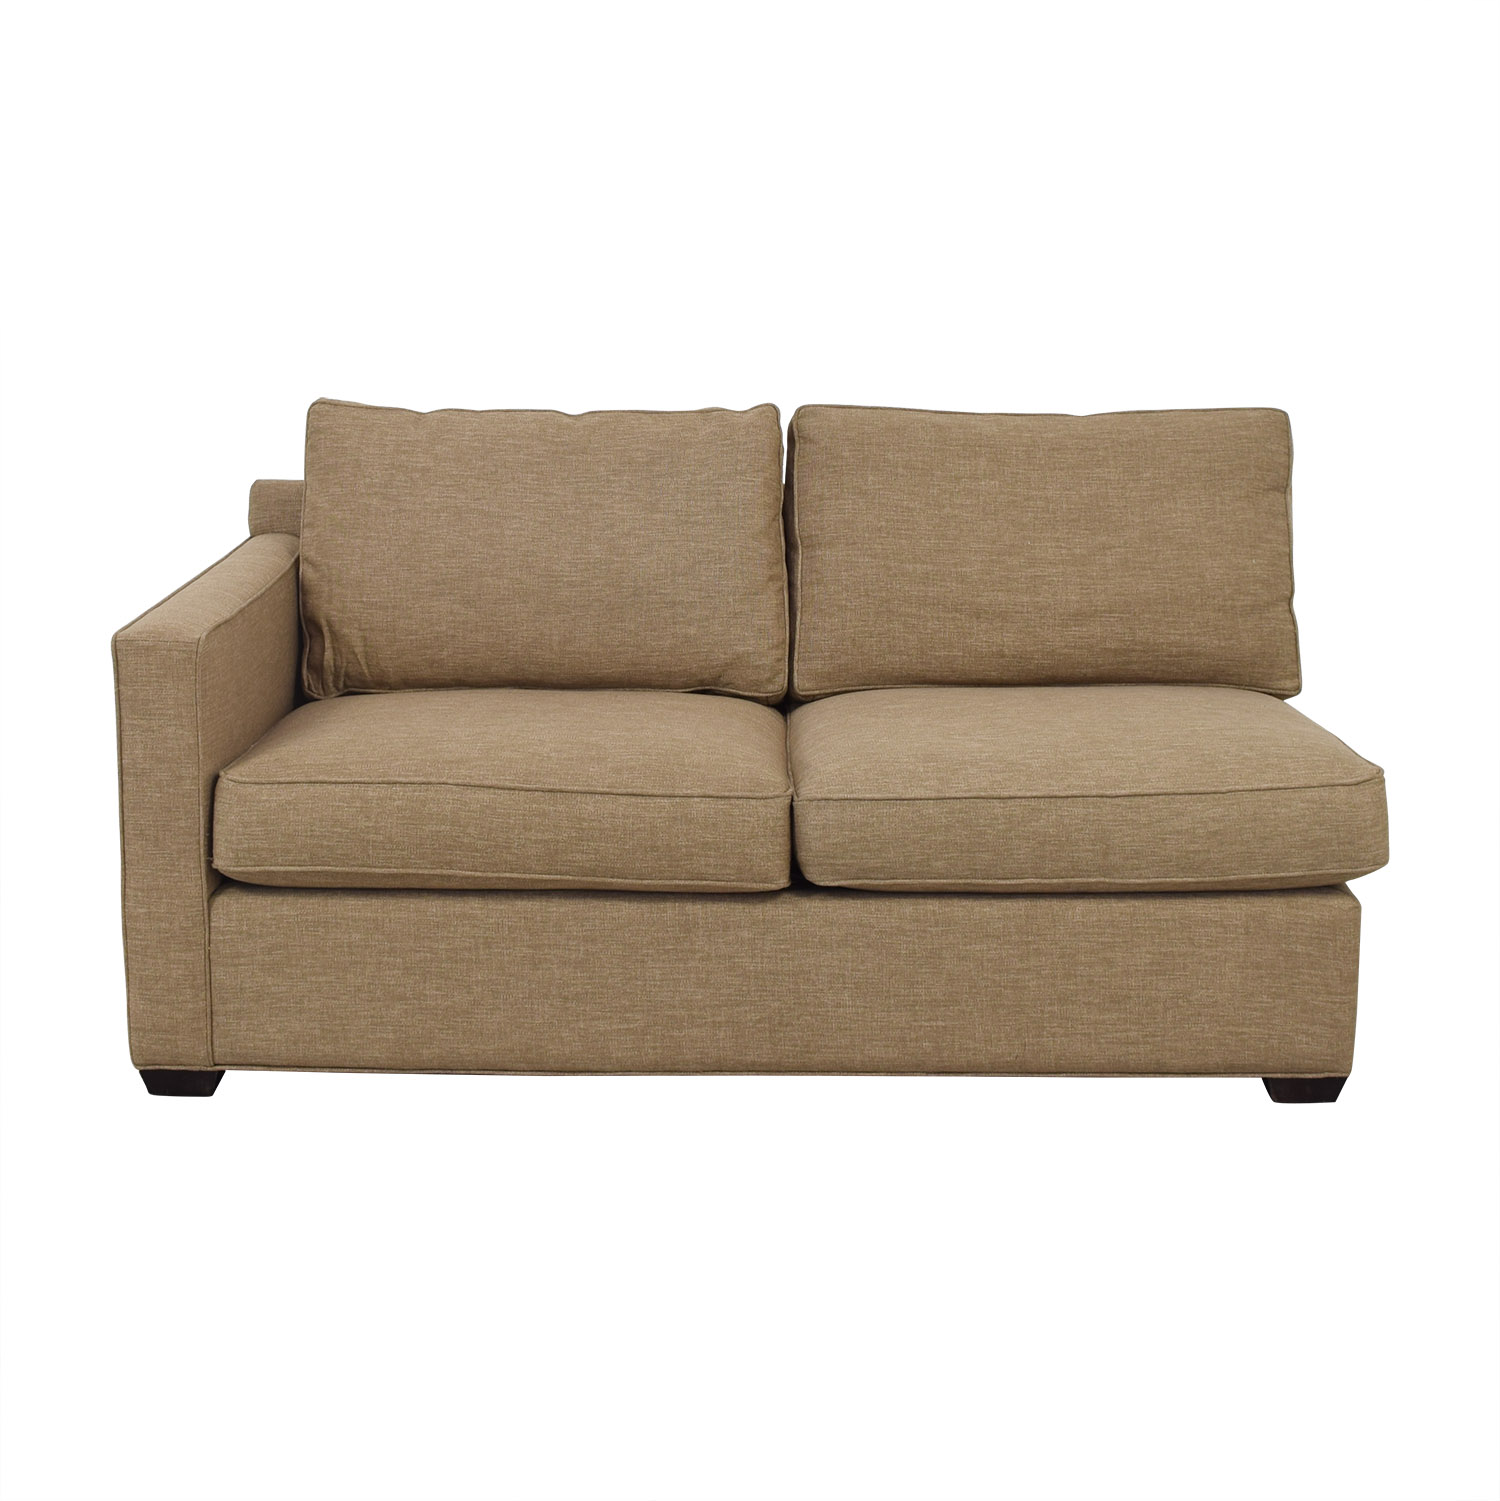 Crate & Barrel Crate & Barrel Davis Left Arm Apartment Sofa ma